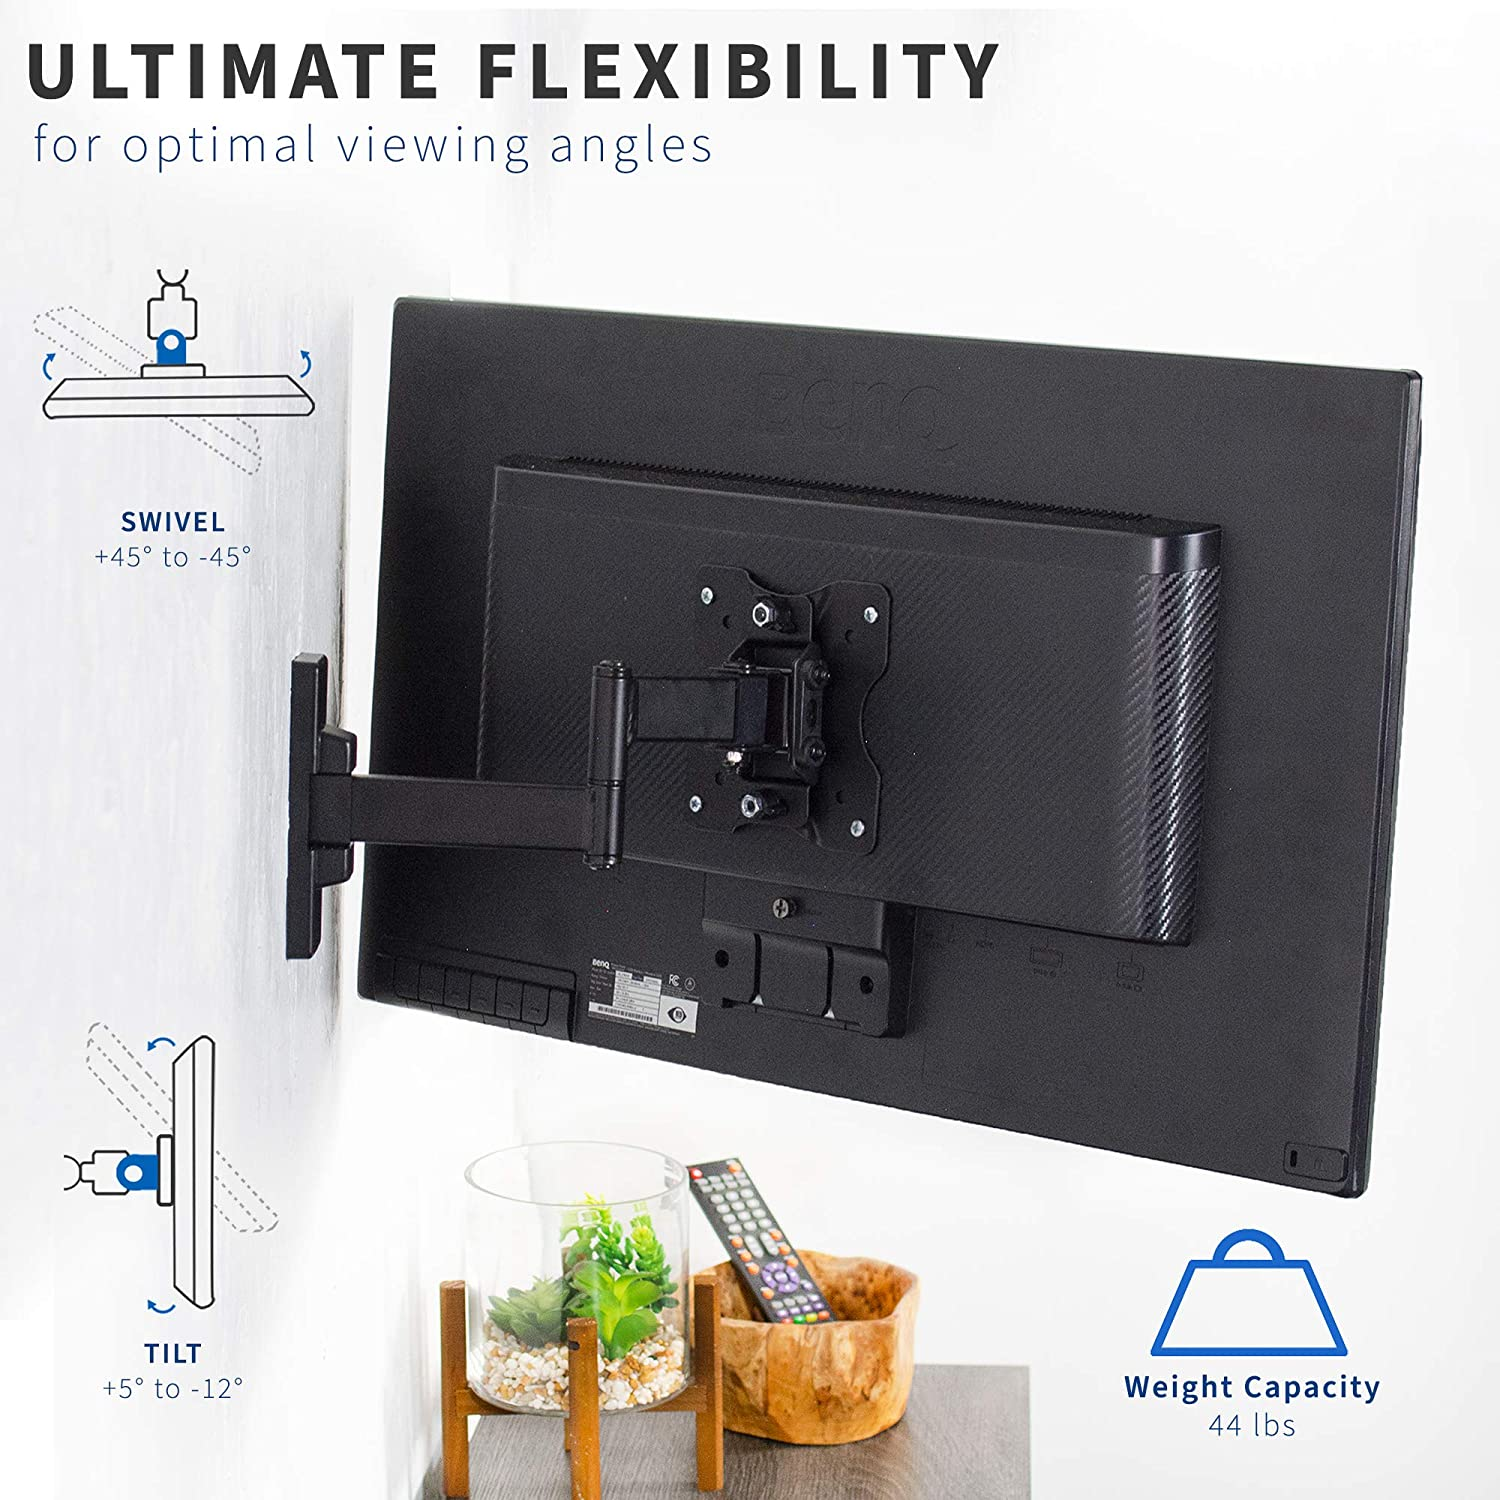 VIVO Full Motion Wall Mount for up to 27 inch LCD LED TV and Computer Monitor Screens, Tilt and Swivel Bracket with Max 100x100mm VESA, Black, MOUNT-VW01M